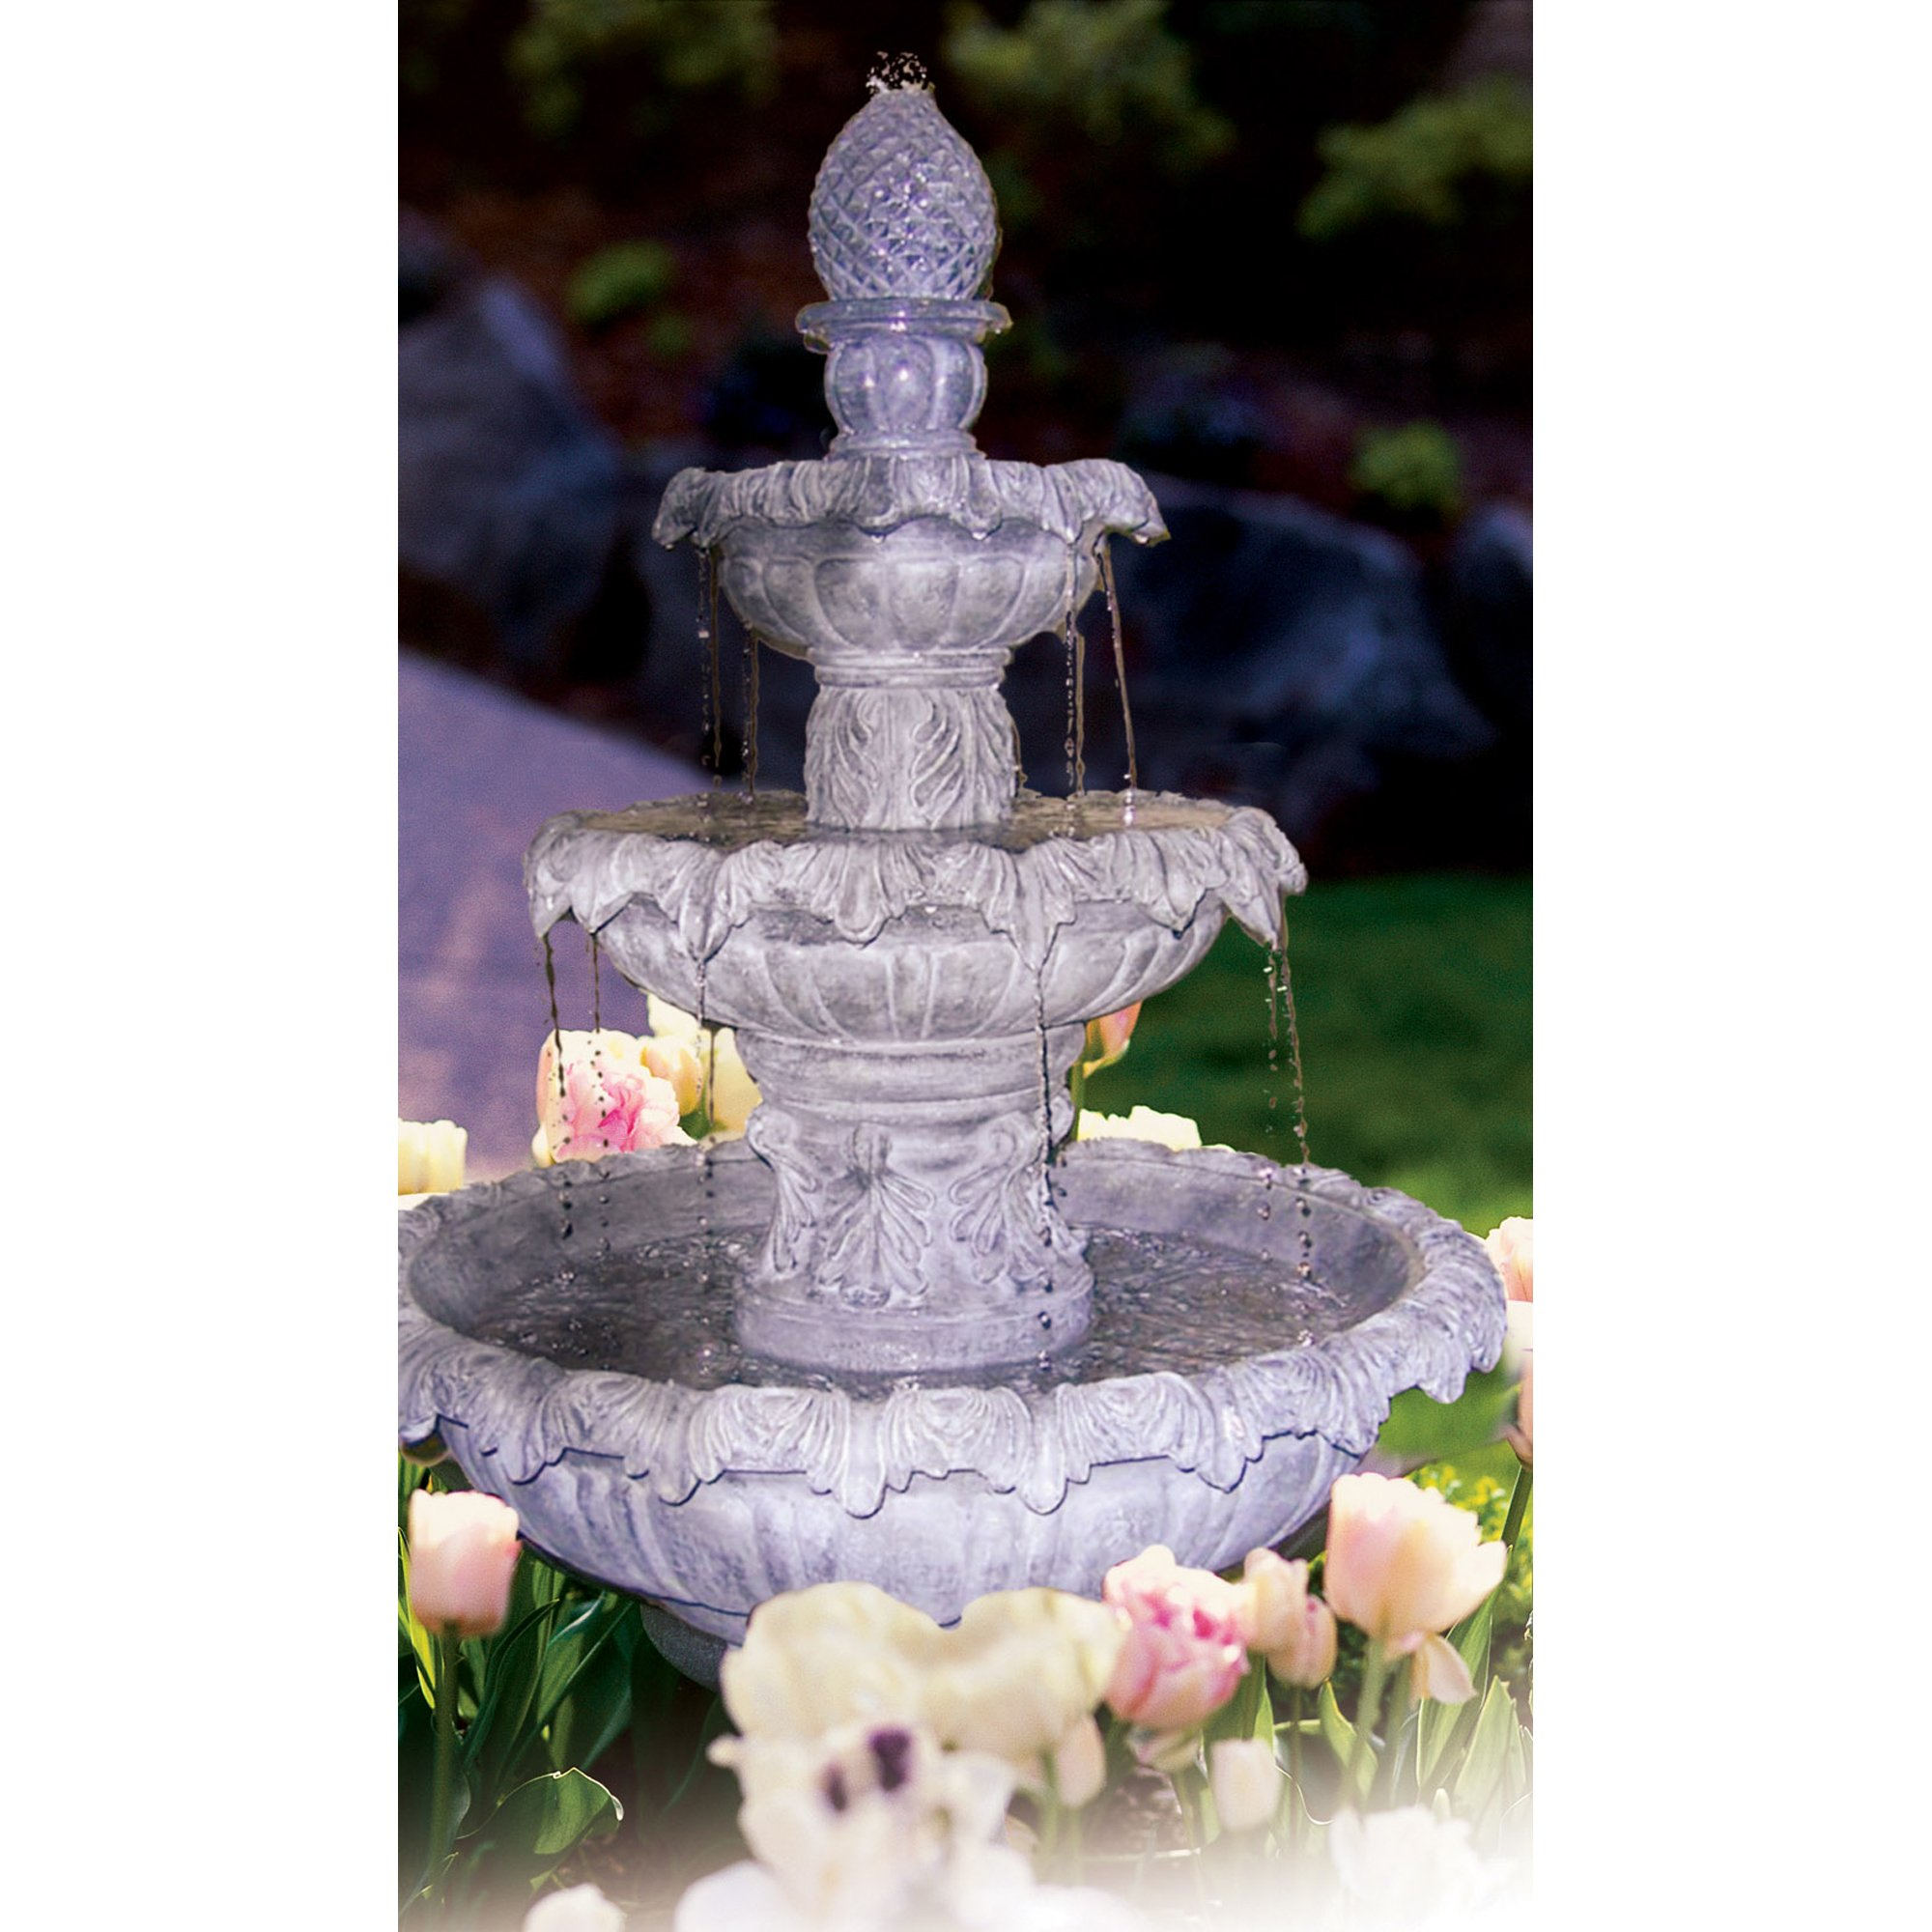 Kenroy Home 53200PLBZ Costa Brava 46-Inch 56-Pound High Outdoor Fountain, Plum Bronze Finish